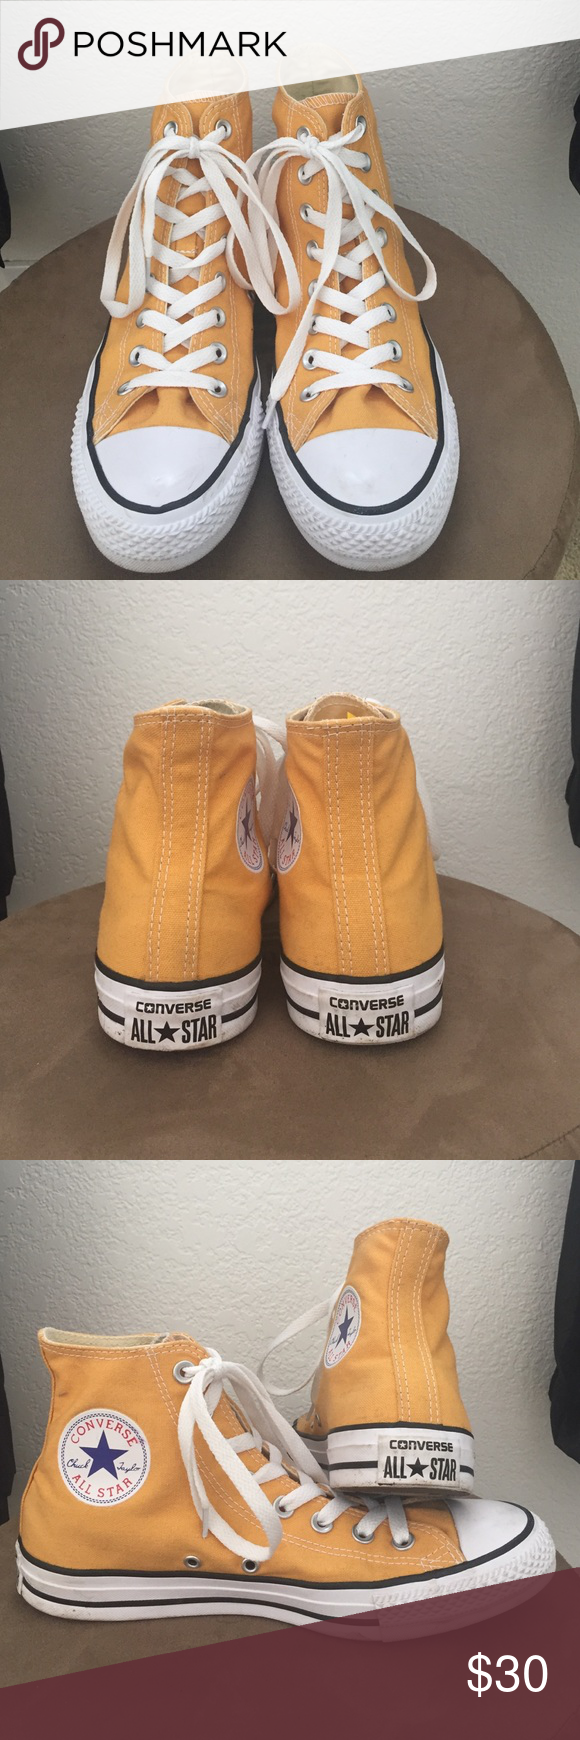 d651da479b5600 CONVERSE   Chuck Taylor All Star Adorable CT AS Converse! Cute  yellow mustard color to spice up an outfit! Worn twice